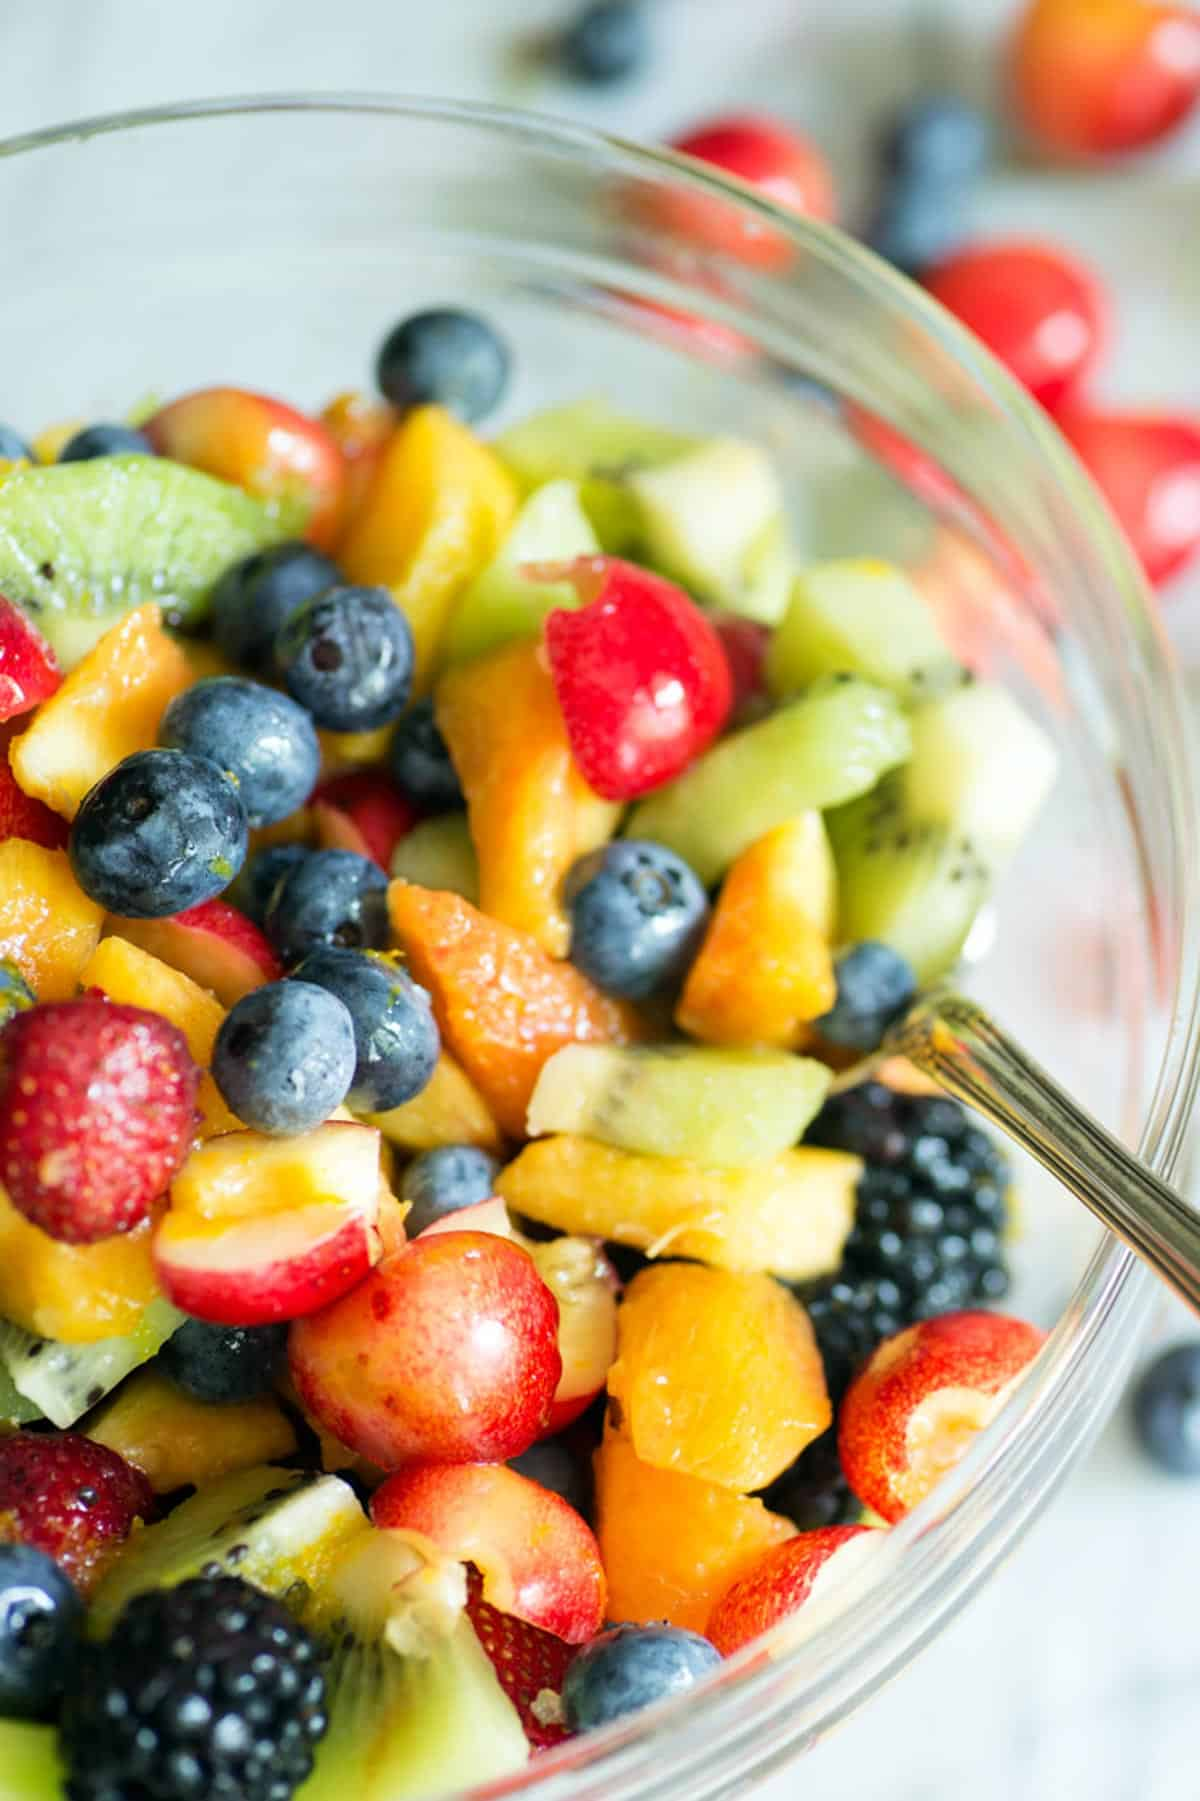 A glass bowl of summer fruit salad with a spoon.